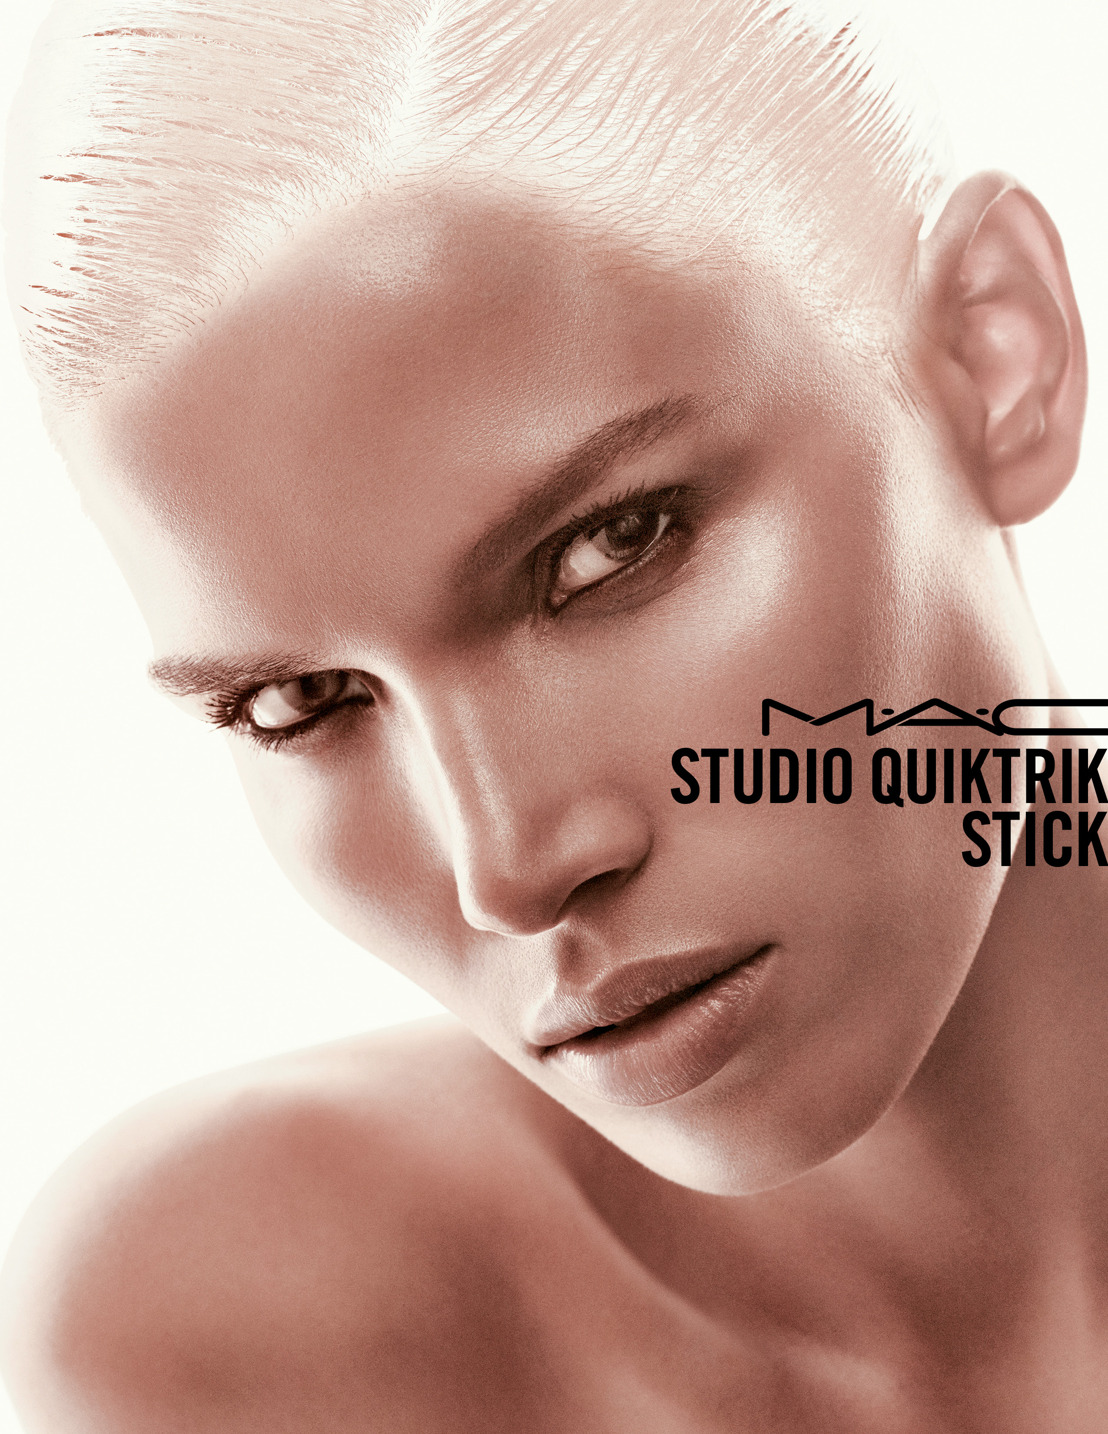 M.A.C Cosmetics - Studio Quicktrick stick